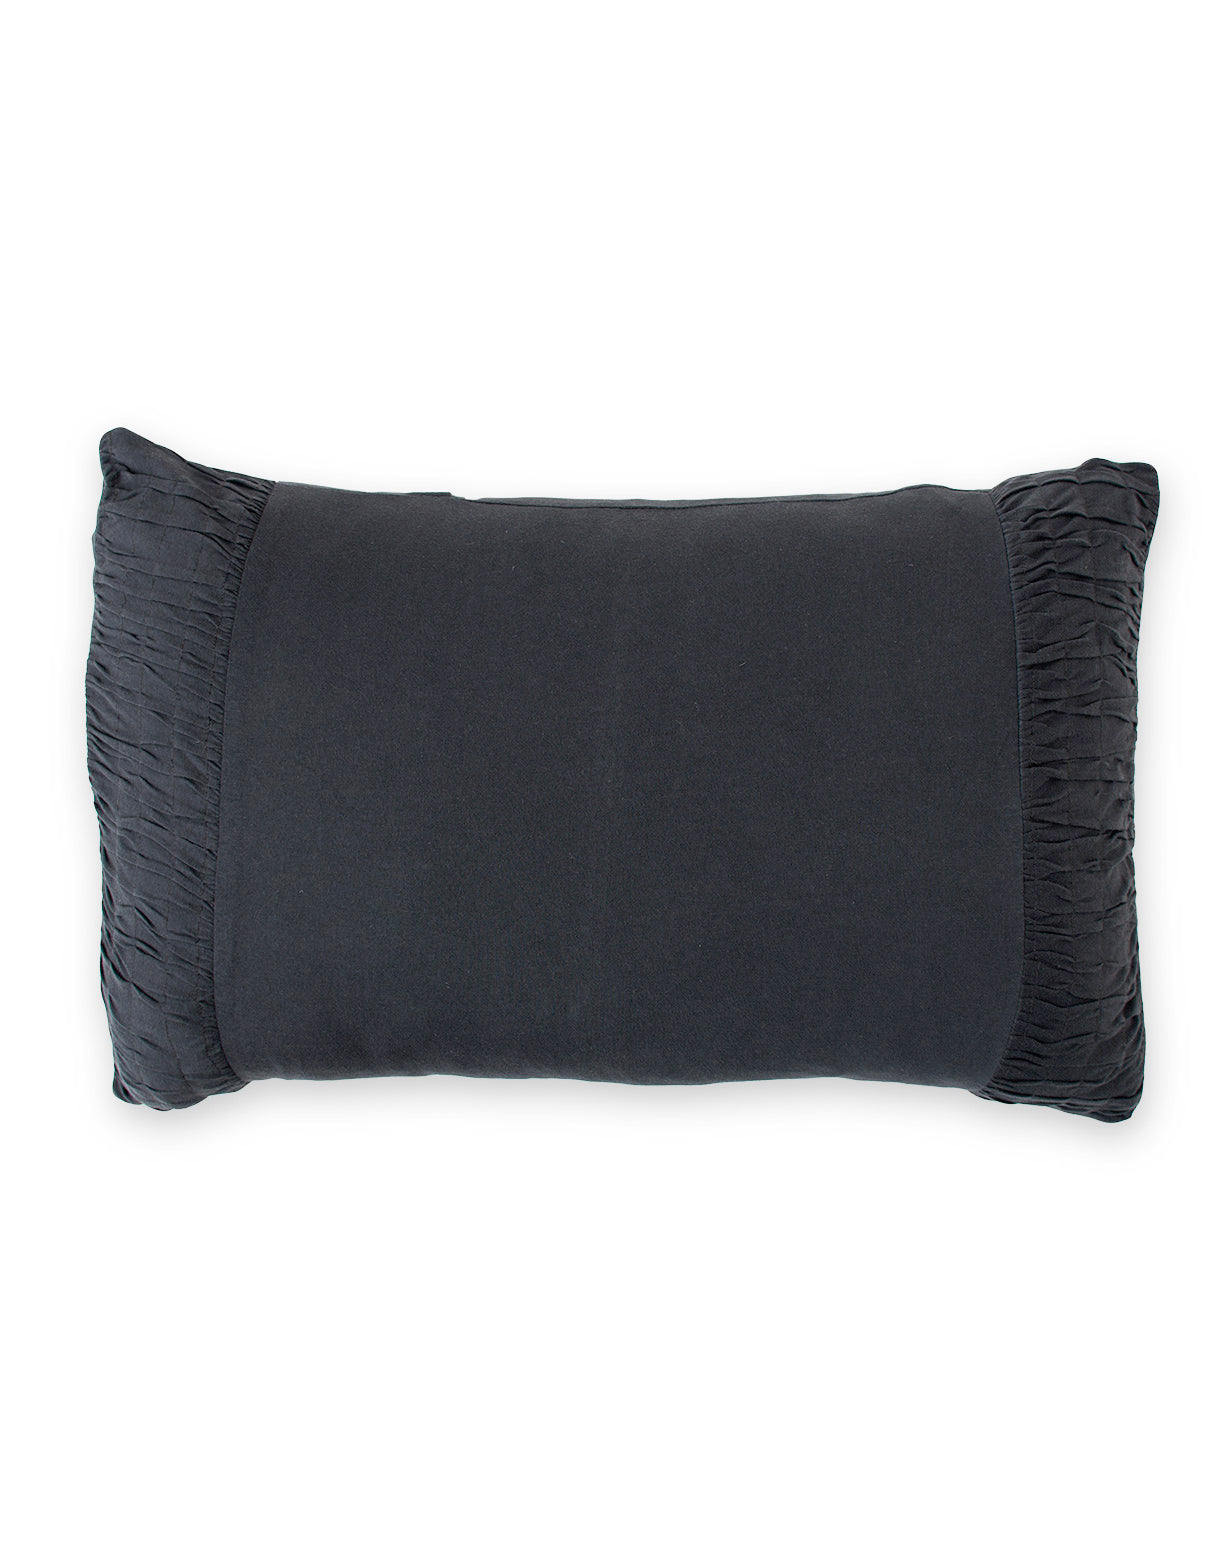 Rosette Pillowcase in Charcoal *organic cotton